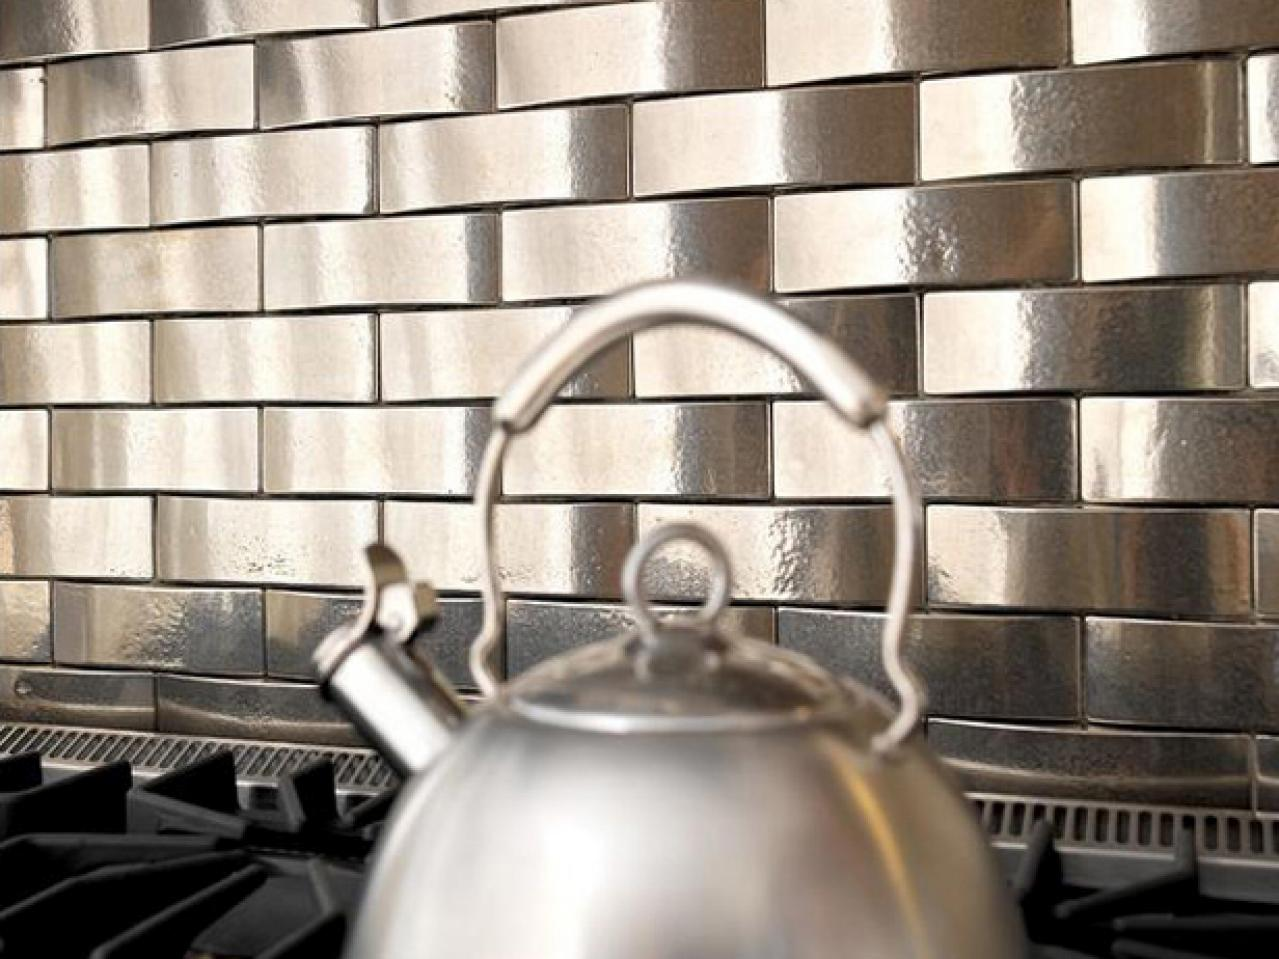 Uncategorized Metal Kitchen Backsplash Ideas kitchen backsplash tile ideas hgtv beautiful options and ideas